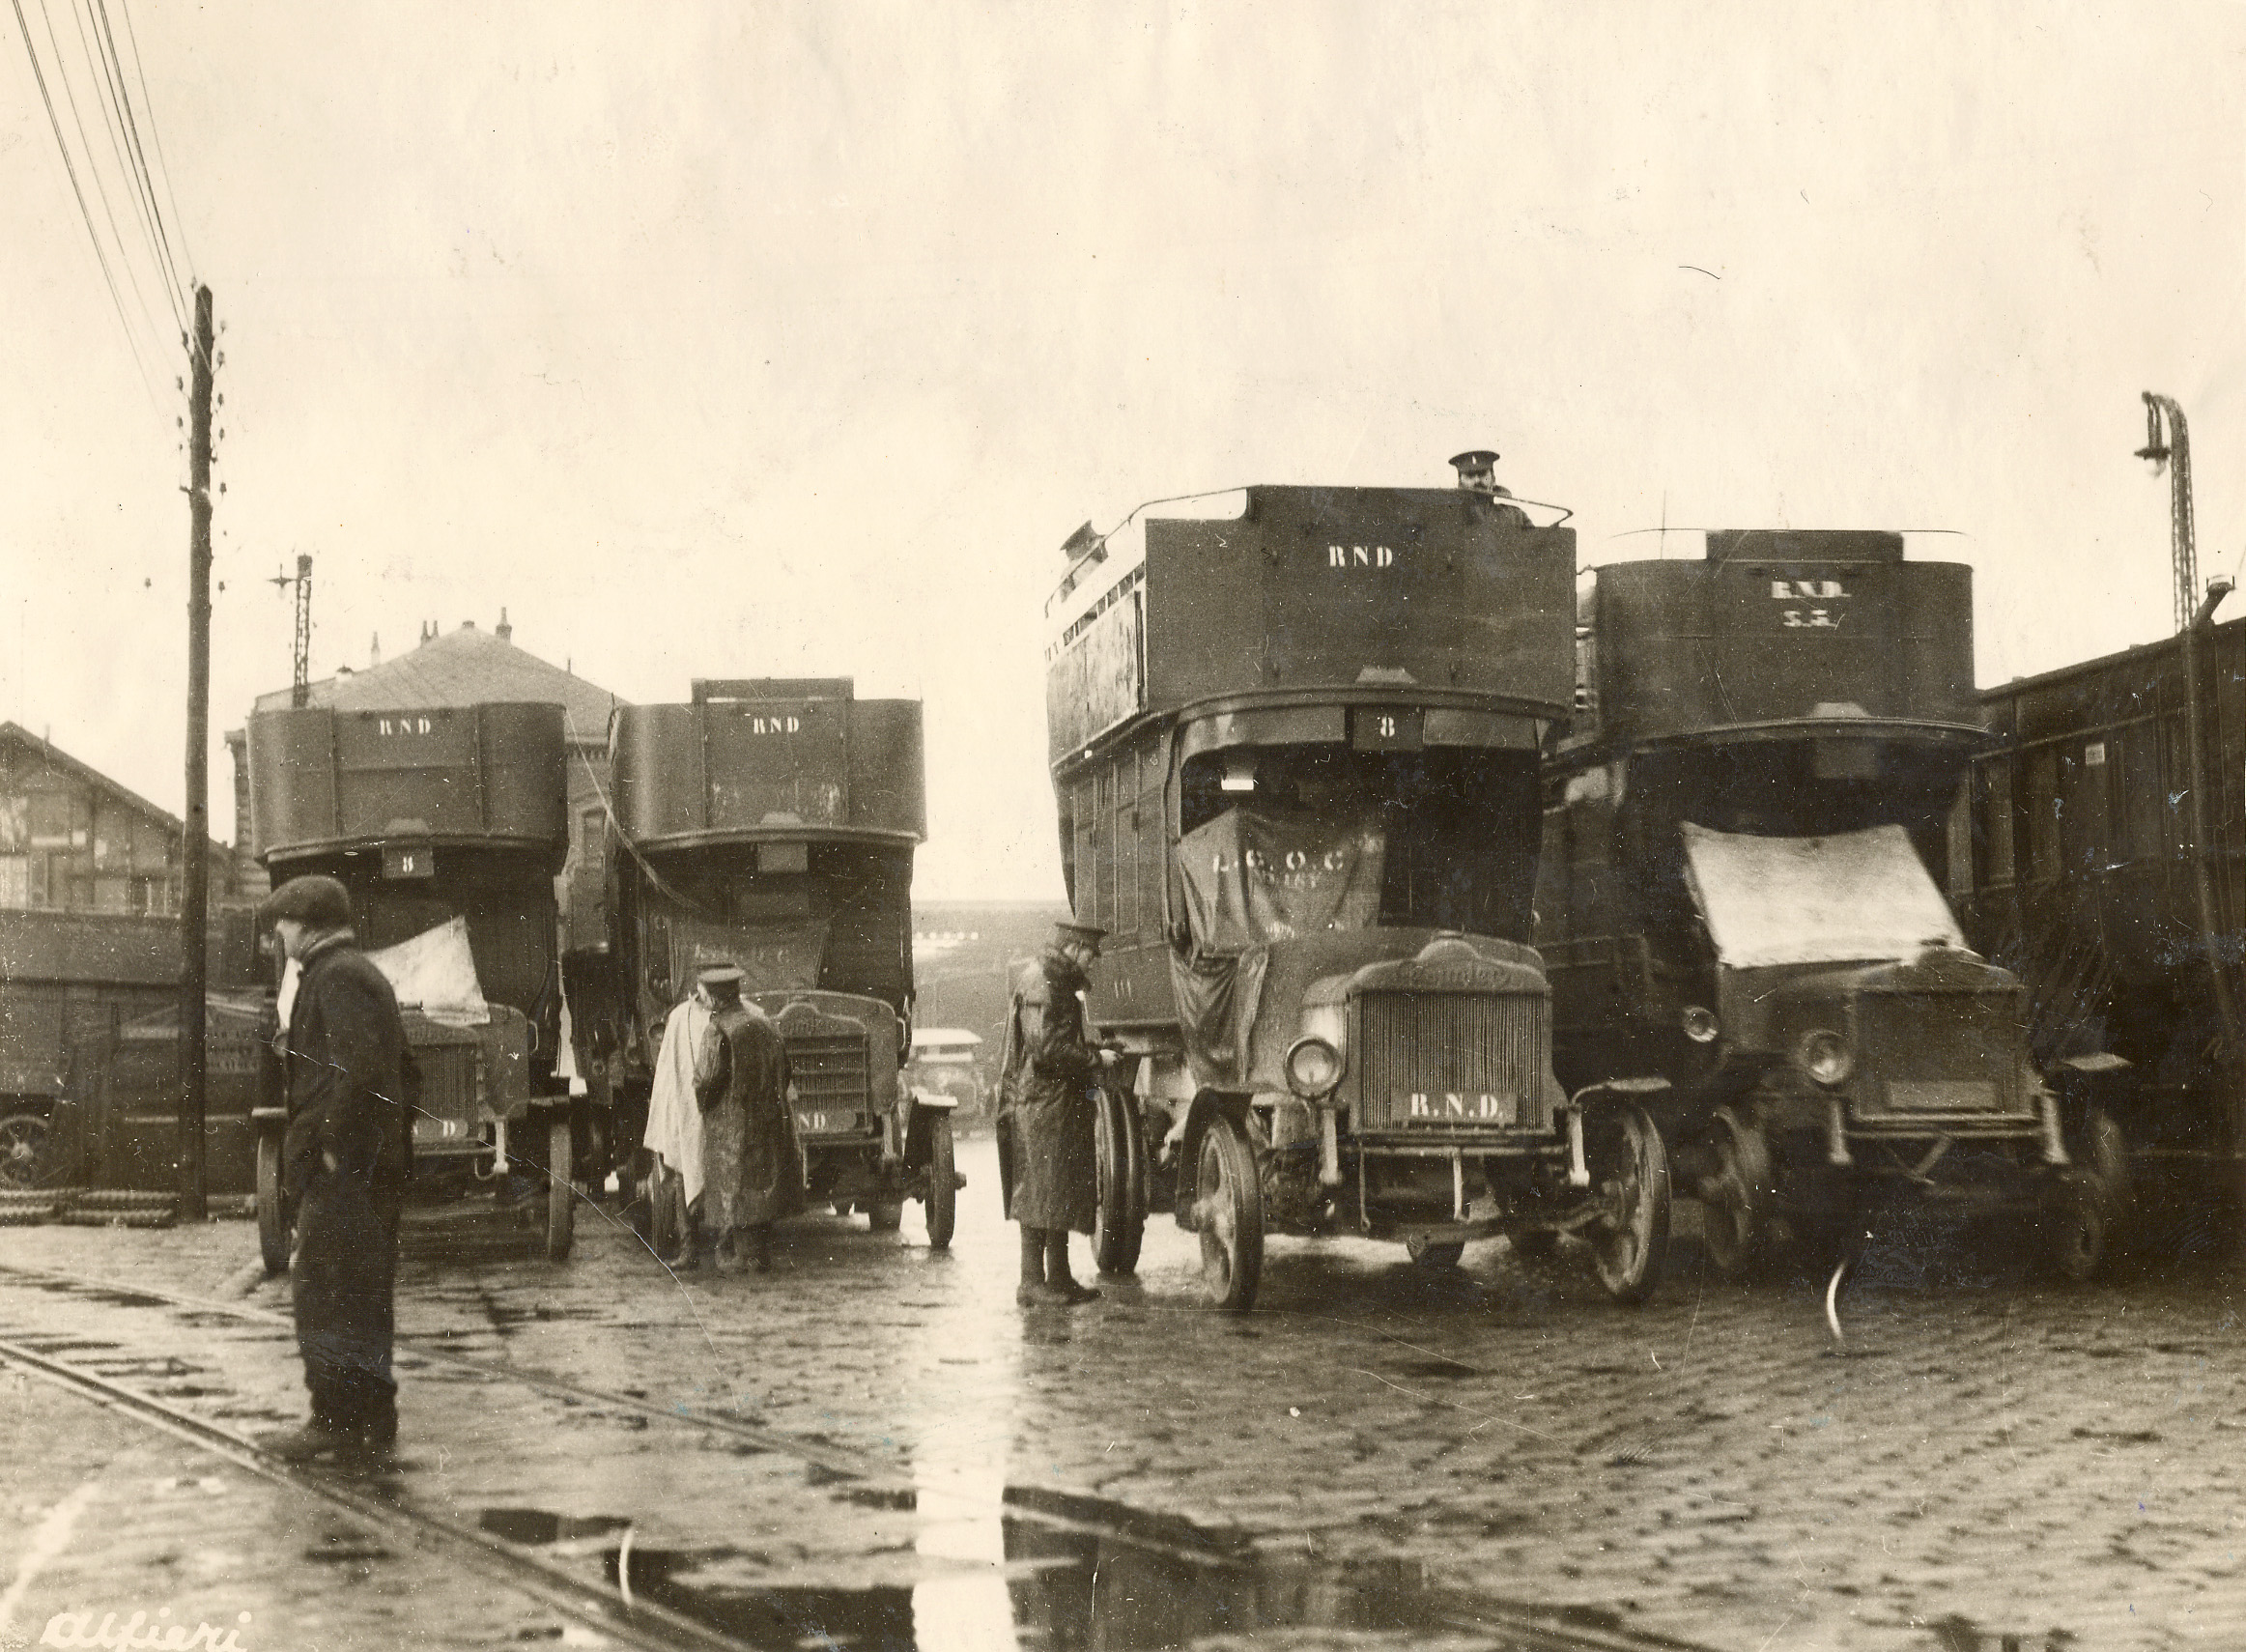 London double-decker buses converted to troop transports